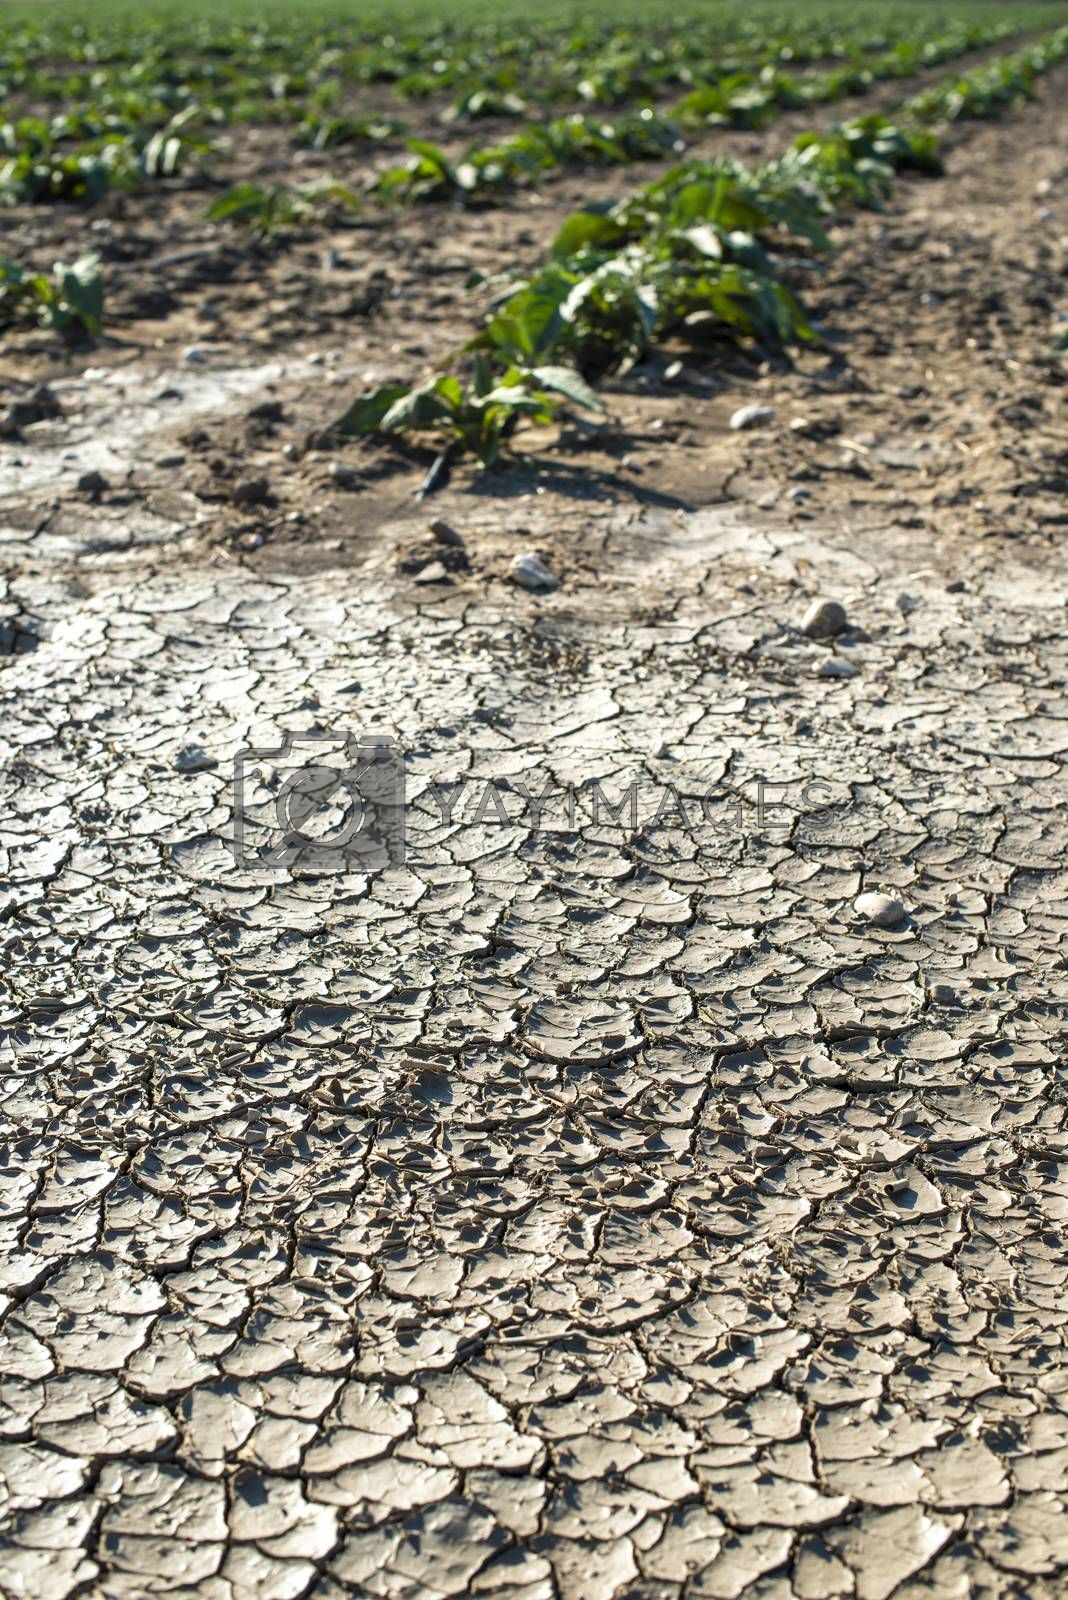 Dry cracked soil and plants on background.